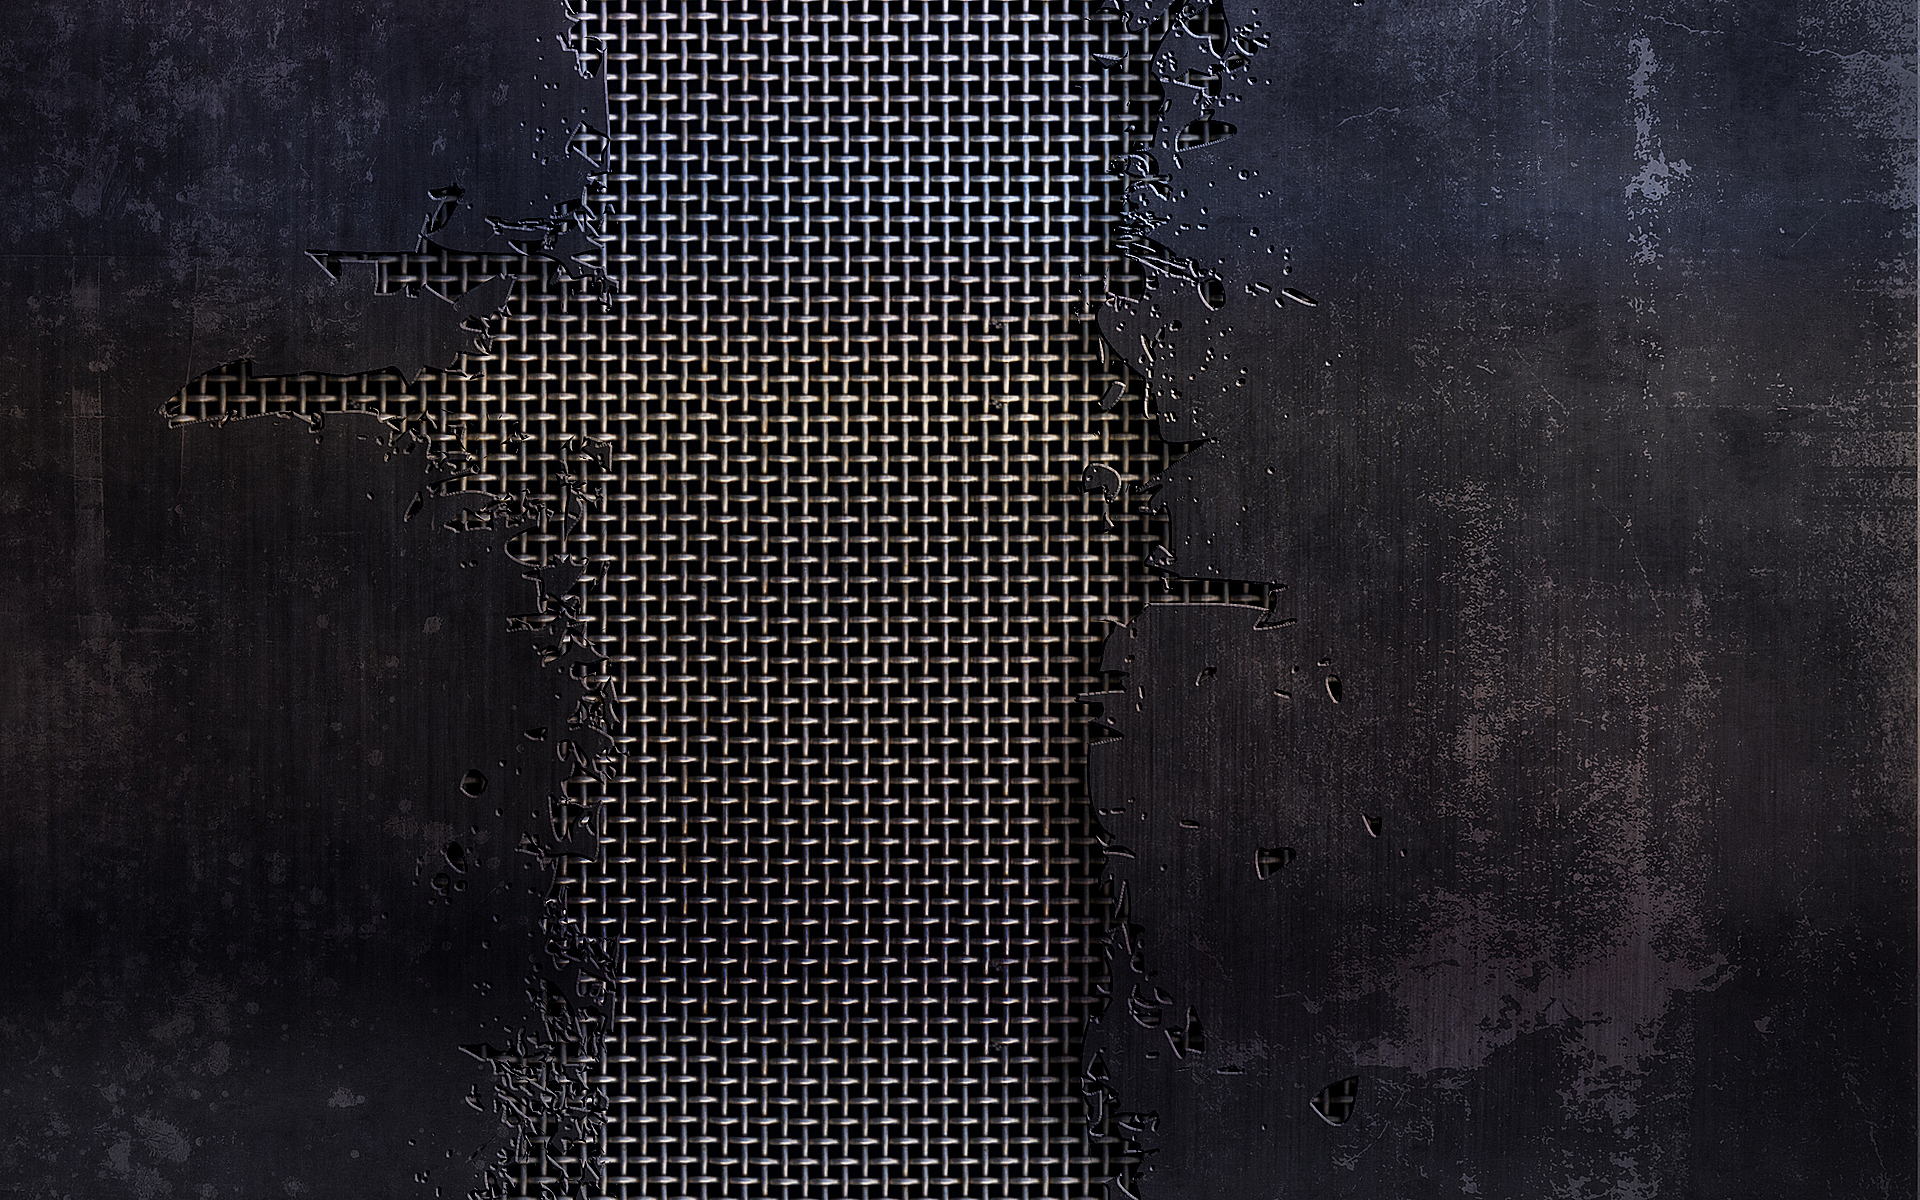 metal, grid, iron, leaf, background, metal texture